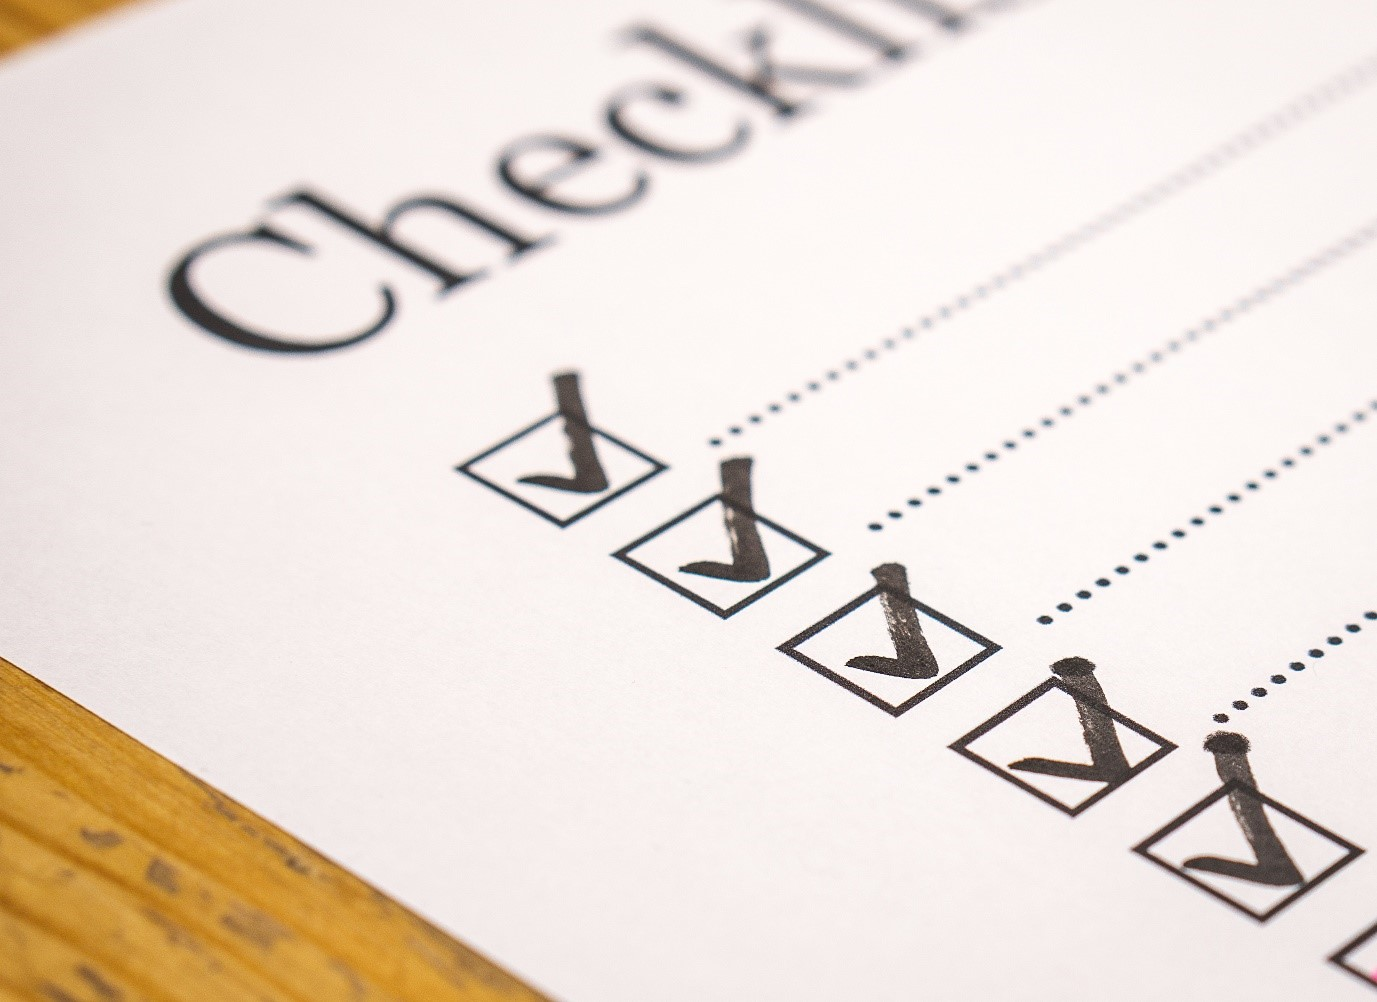 HAVE YOU PREPARED YOUR END OF YEAR CHECKLIST?